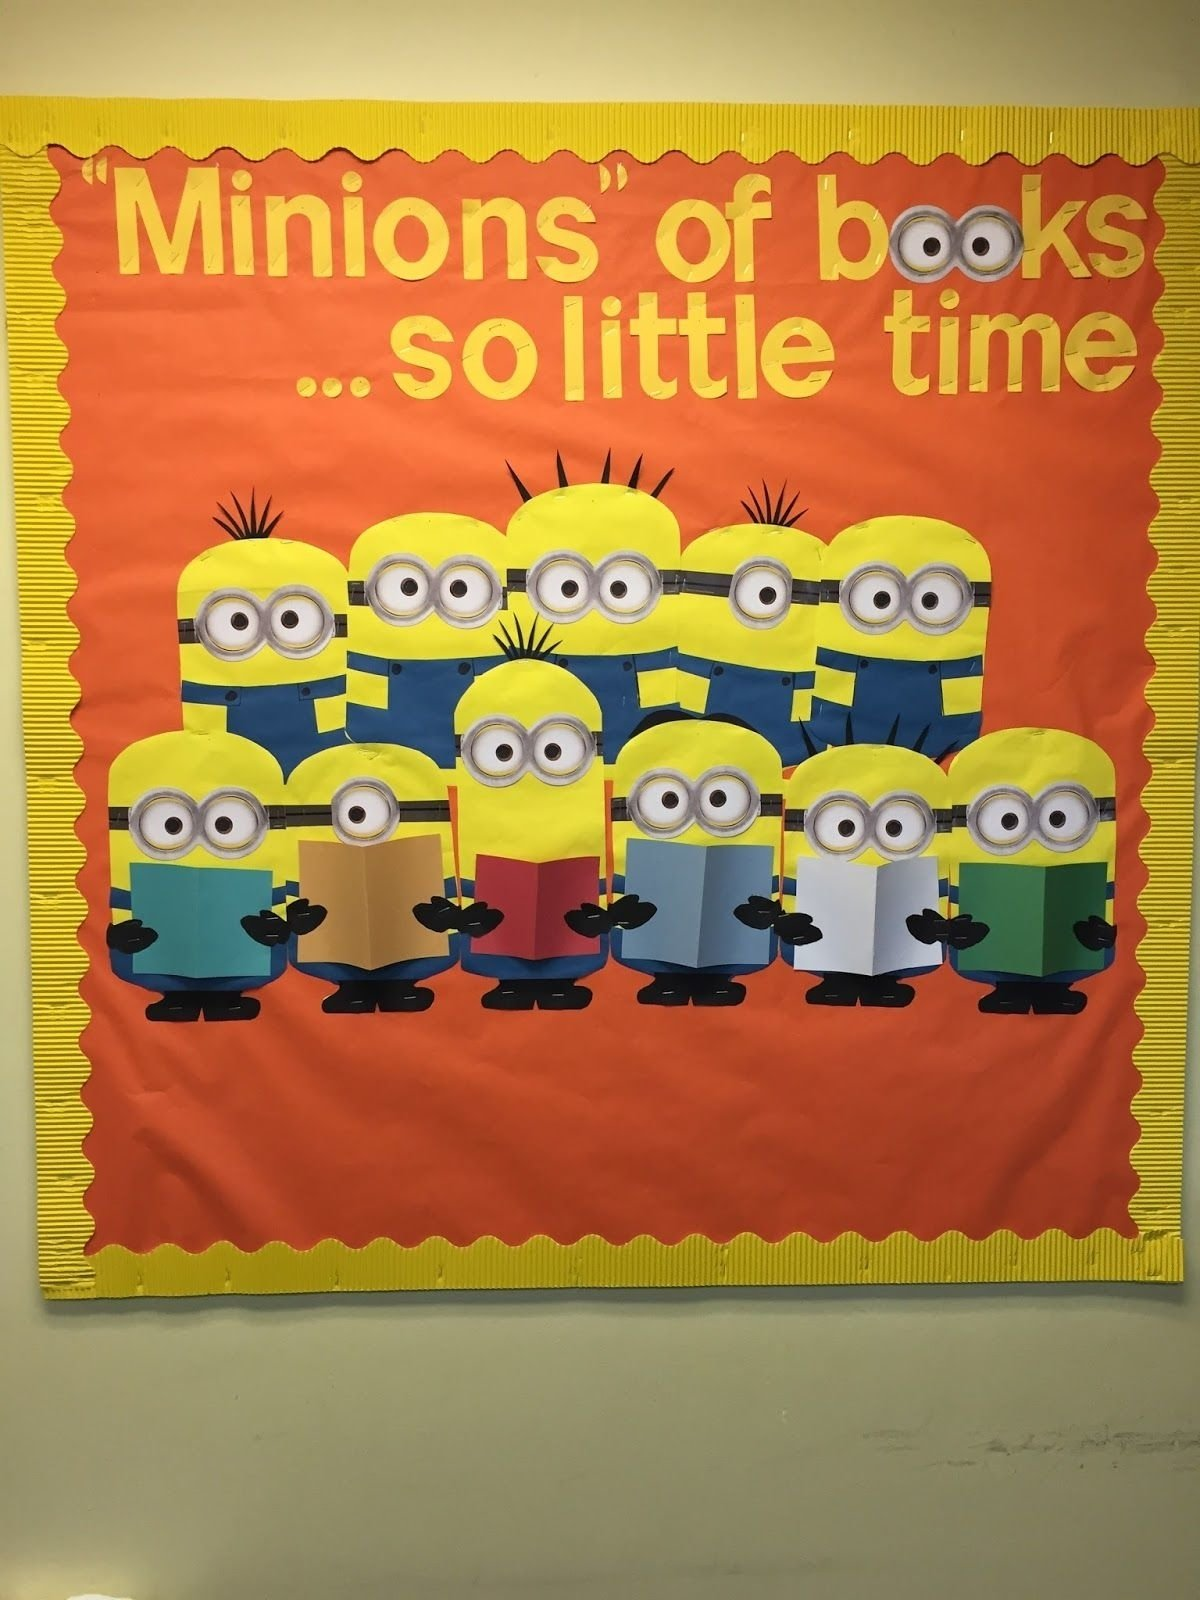 10 Nice Fall Library Bulletin Board Ideas time or is that minions of booksso little time a little 2020